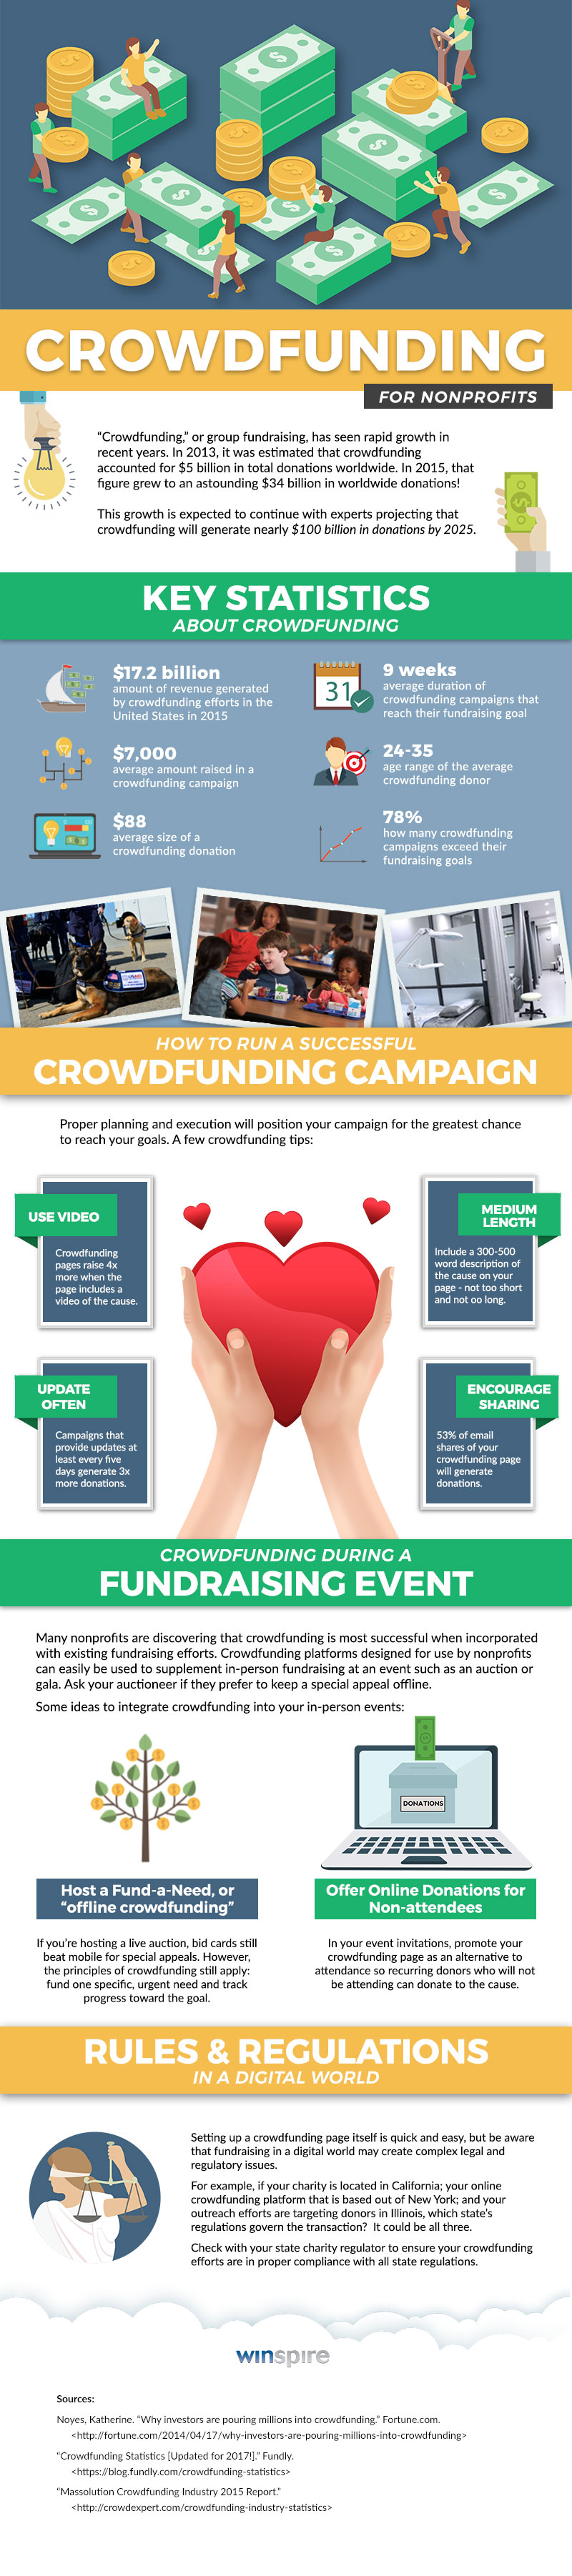 Crowdfunding for Nonprofits Infographic